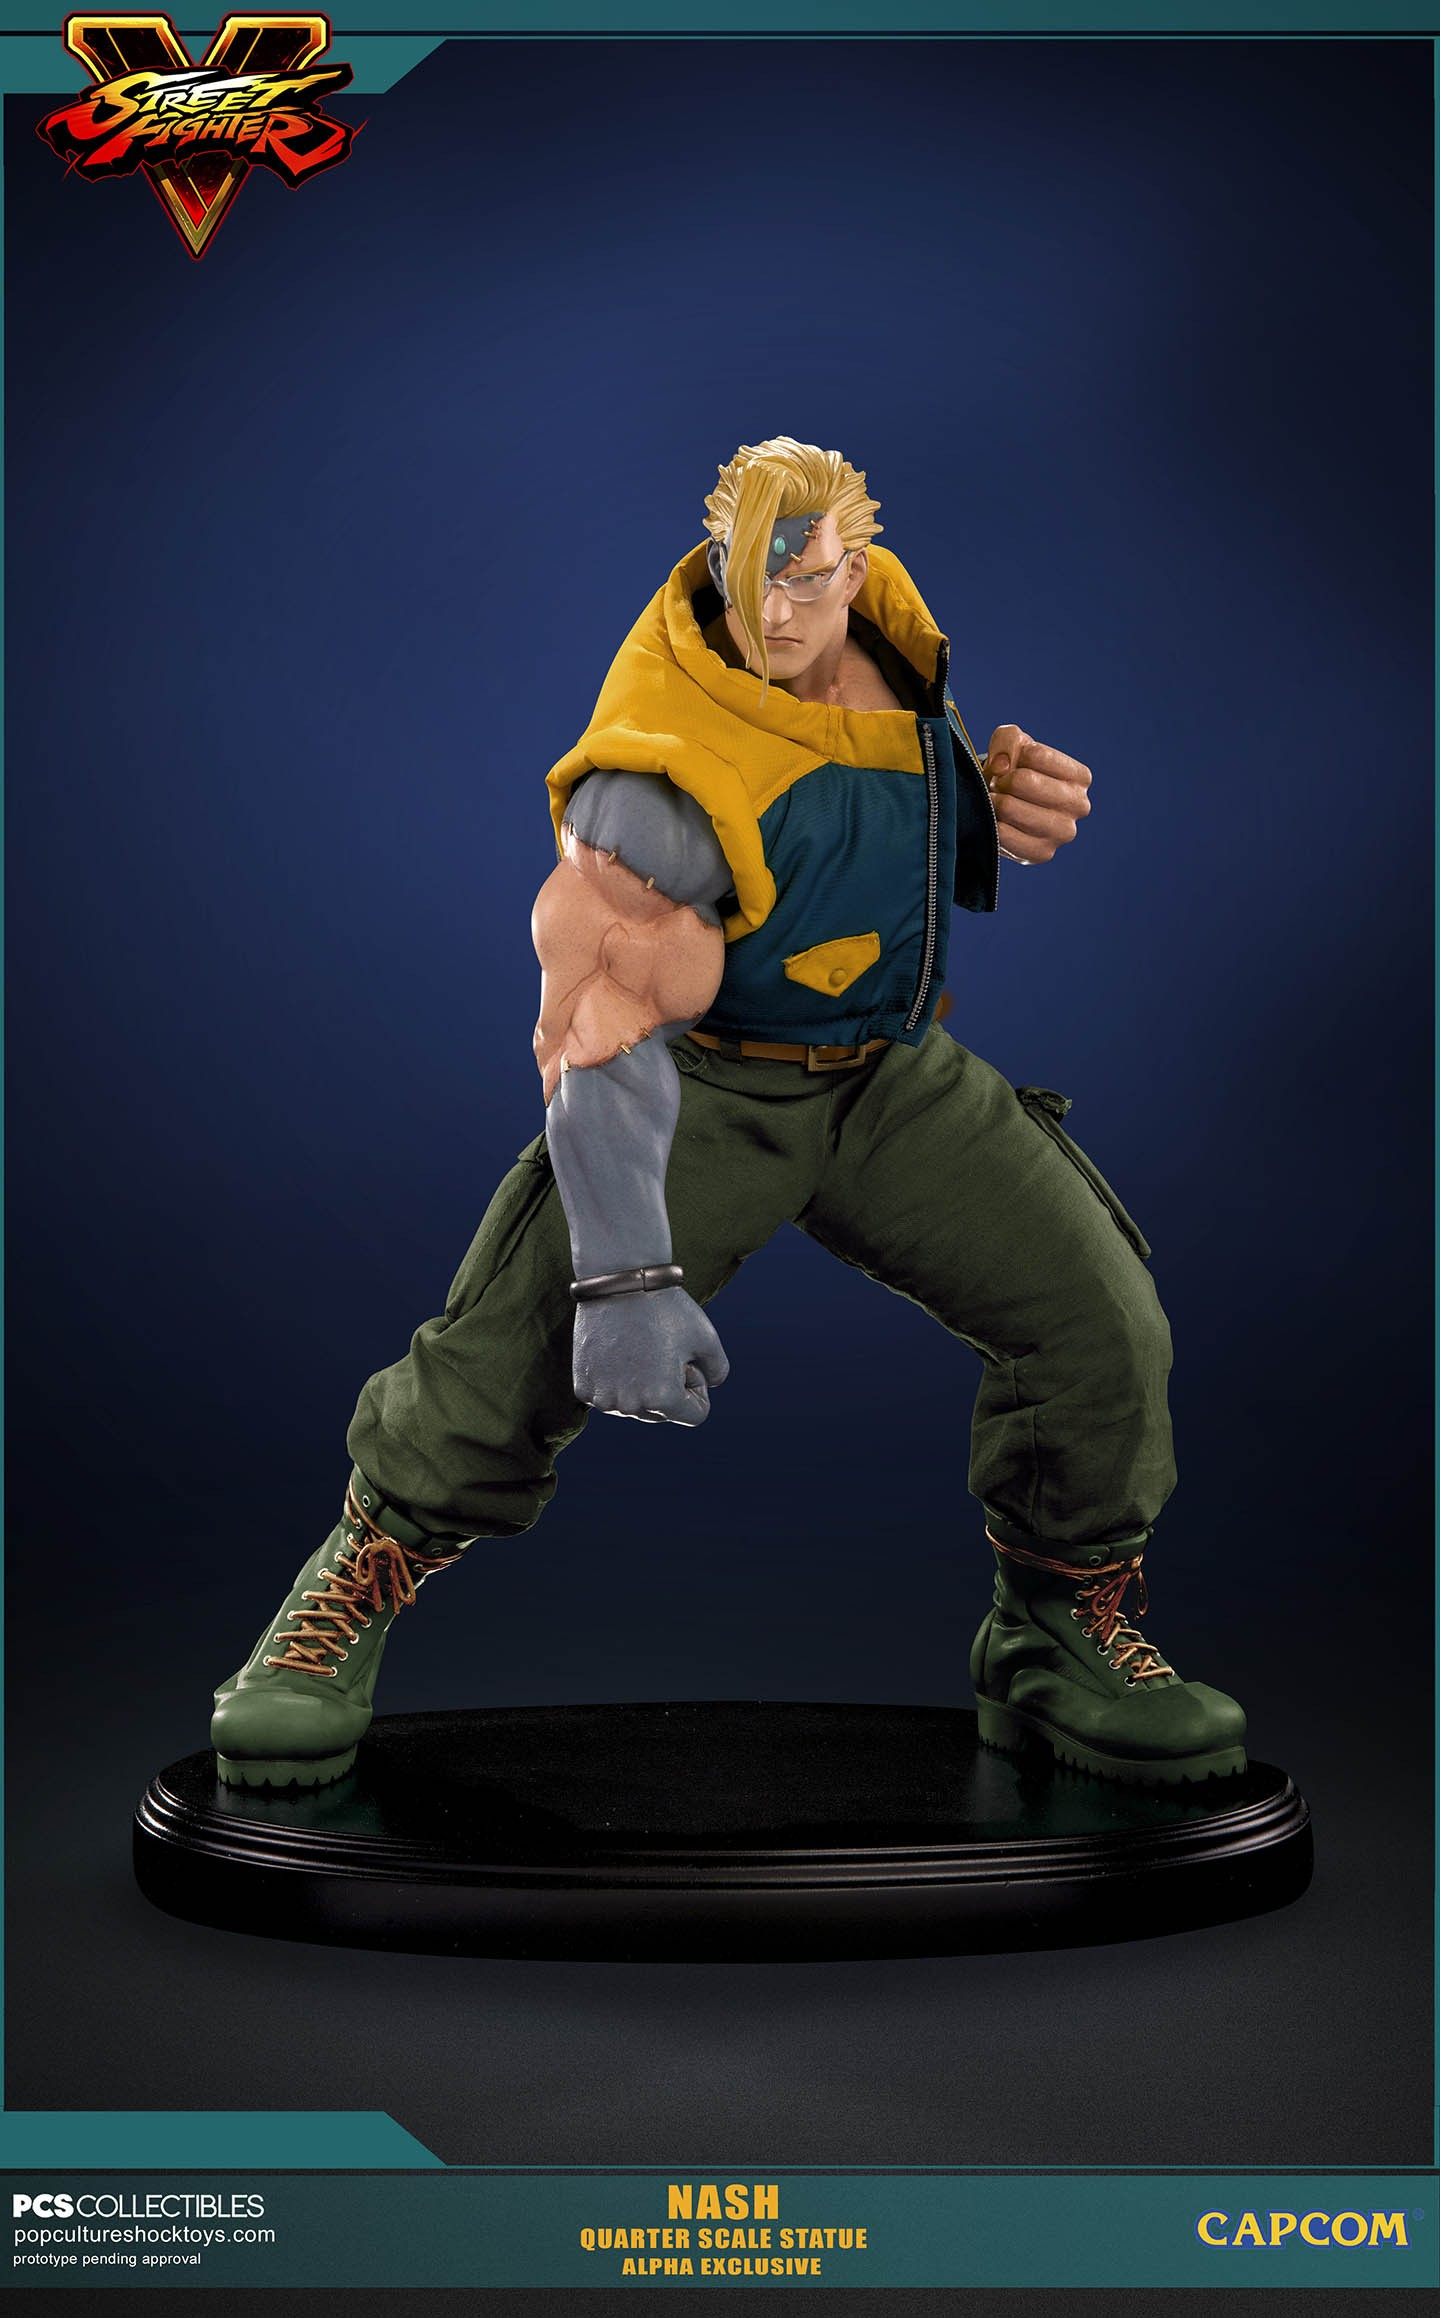 Street Fighter V Nash Statue Photos and Info